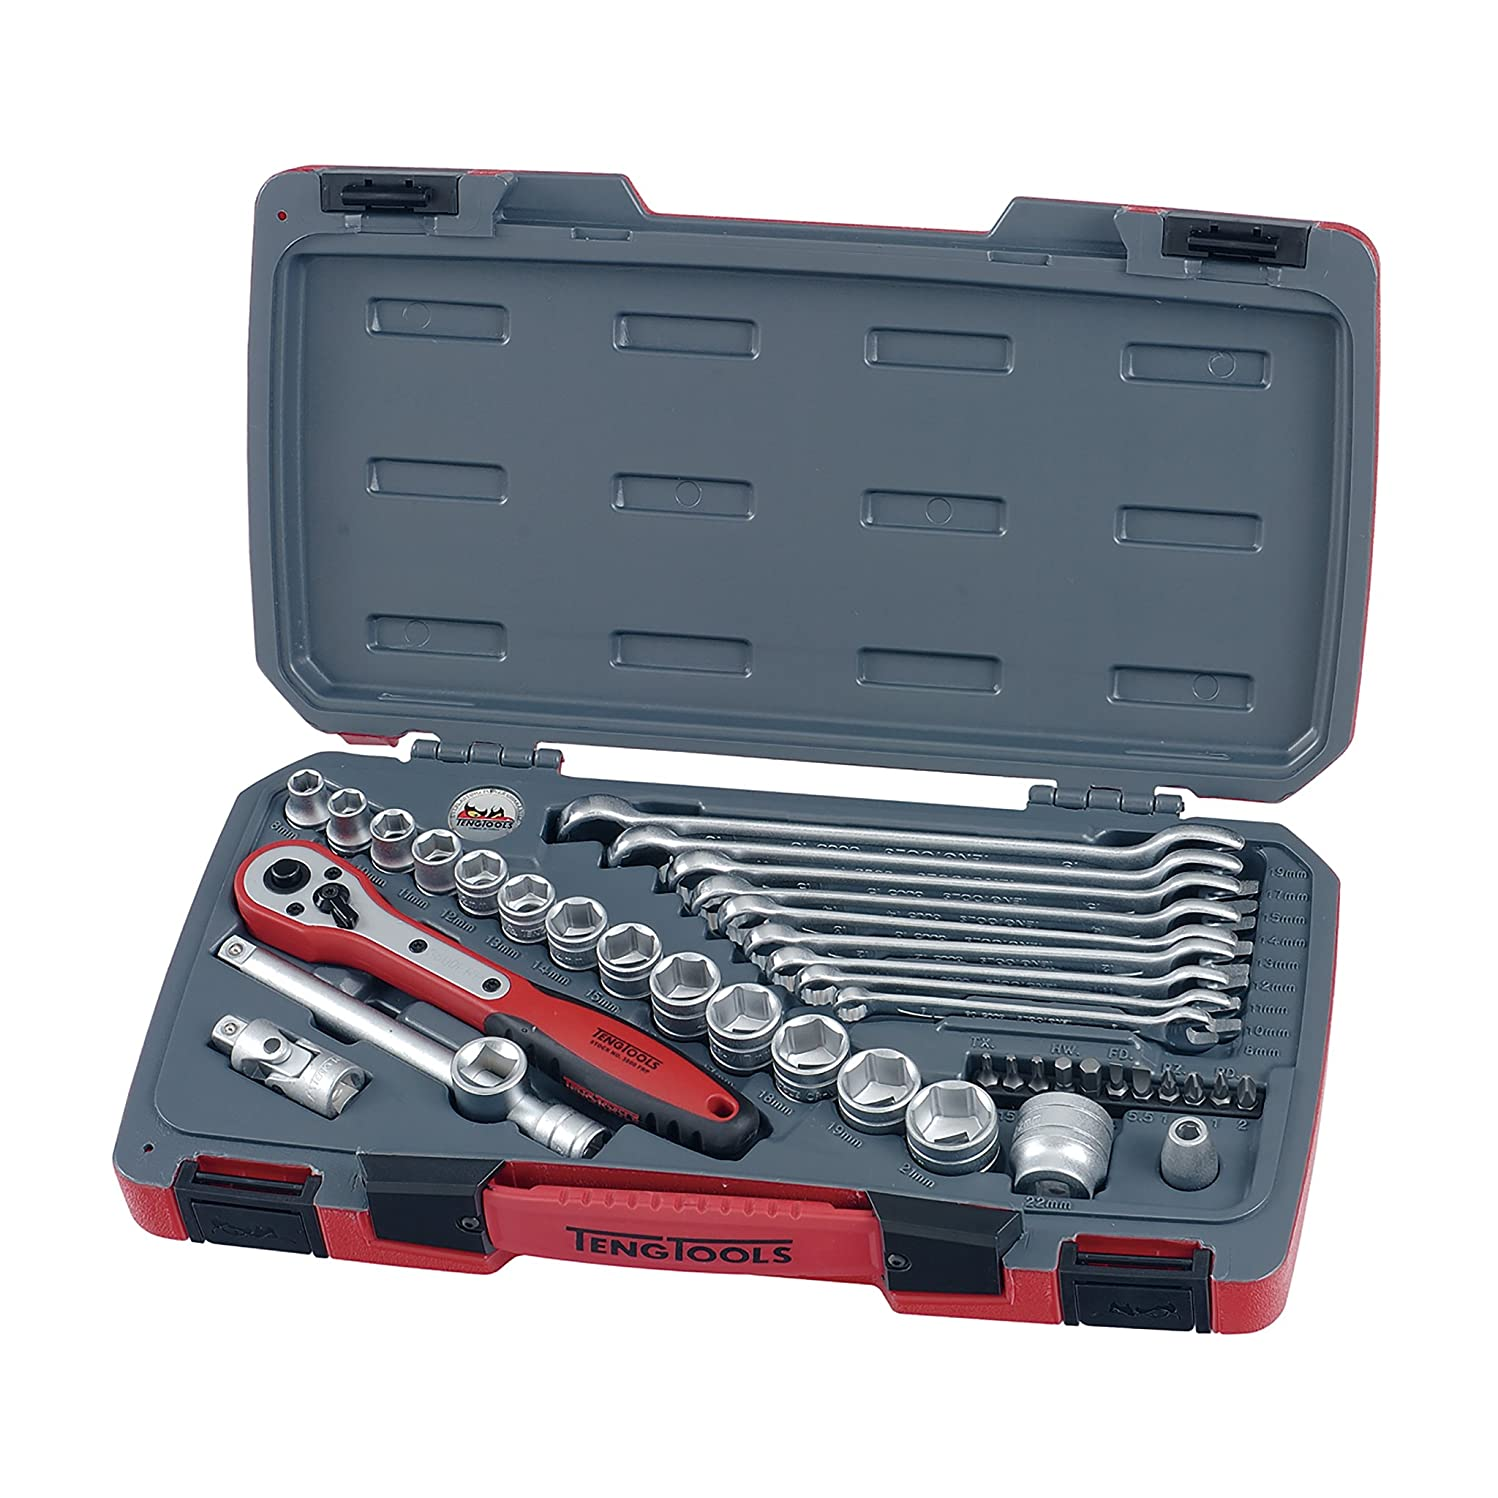 Teng Tools 39 Piece 3/8 Inch Drive 6 Point Metric Regular/Shallow Socket (8mm - 22mm) & Wrench (8mm - 19mm) Set With FRP Ratchet, Universal Joint, Extensions, Coupler Adaptor, Wrenches & Bits - T3840